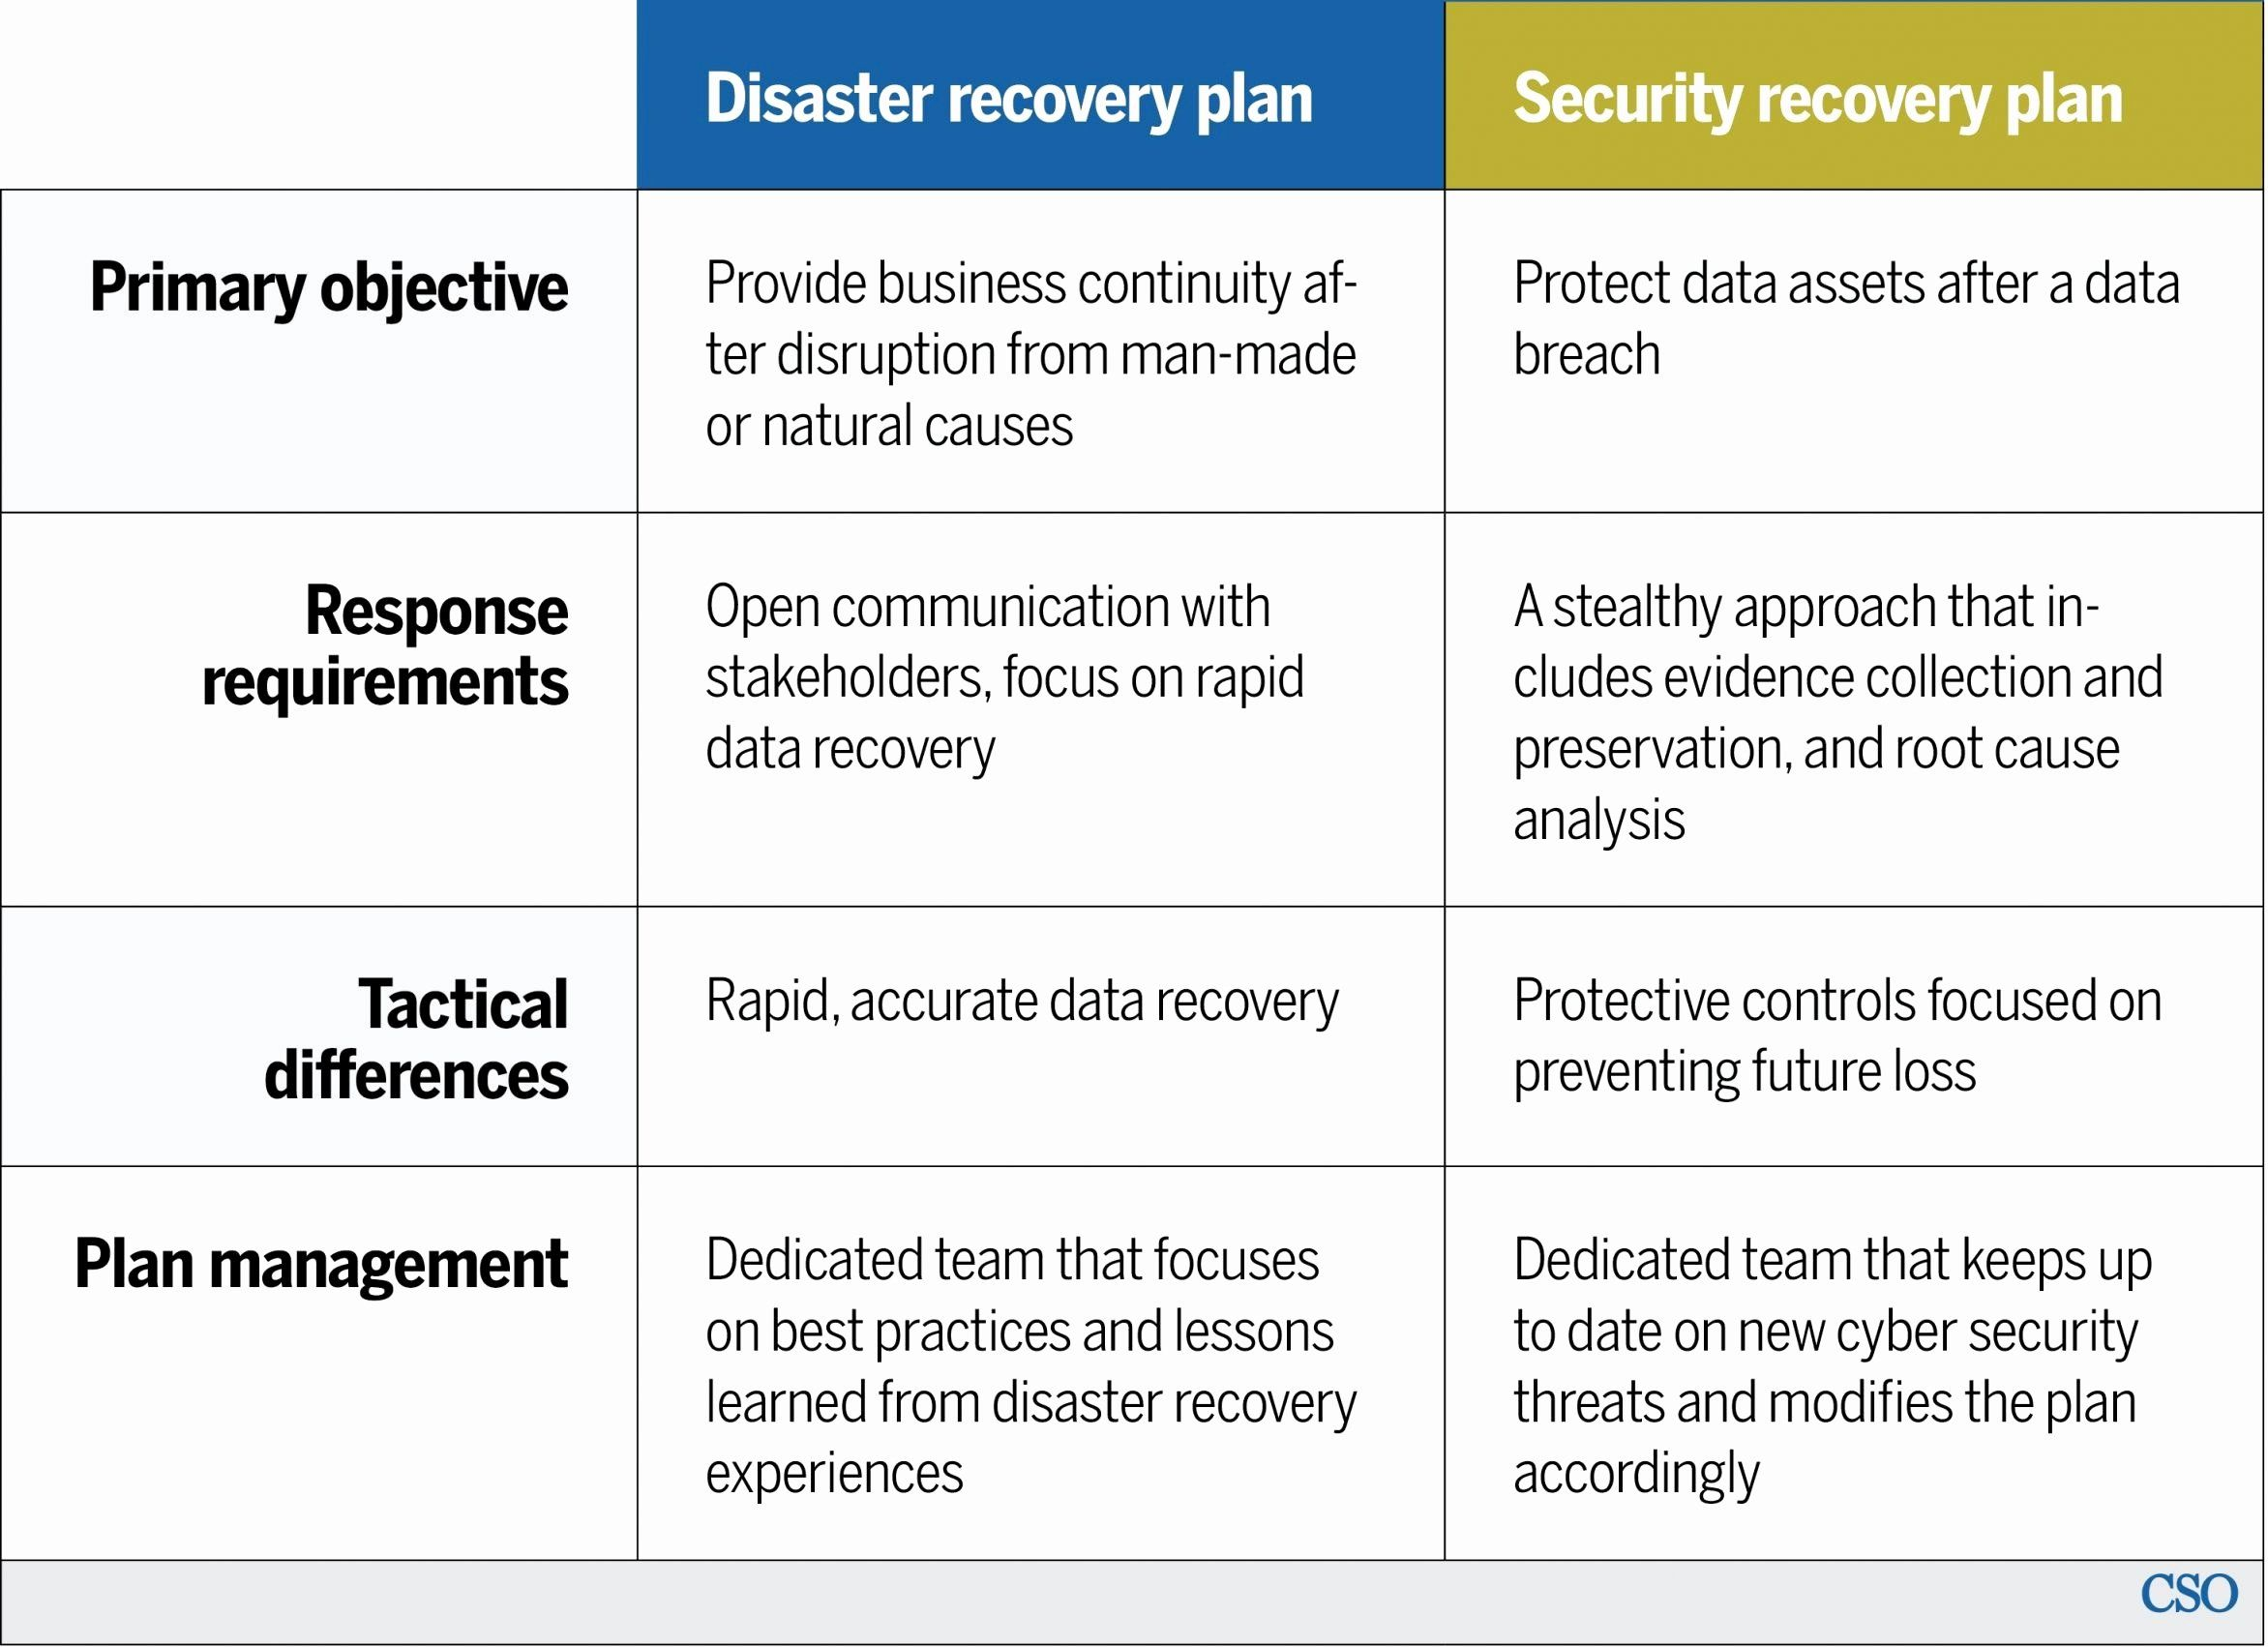 Cyber Security Incident Response Plan Template In 2020 Disaster